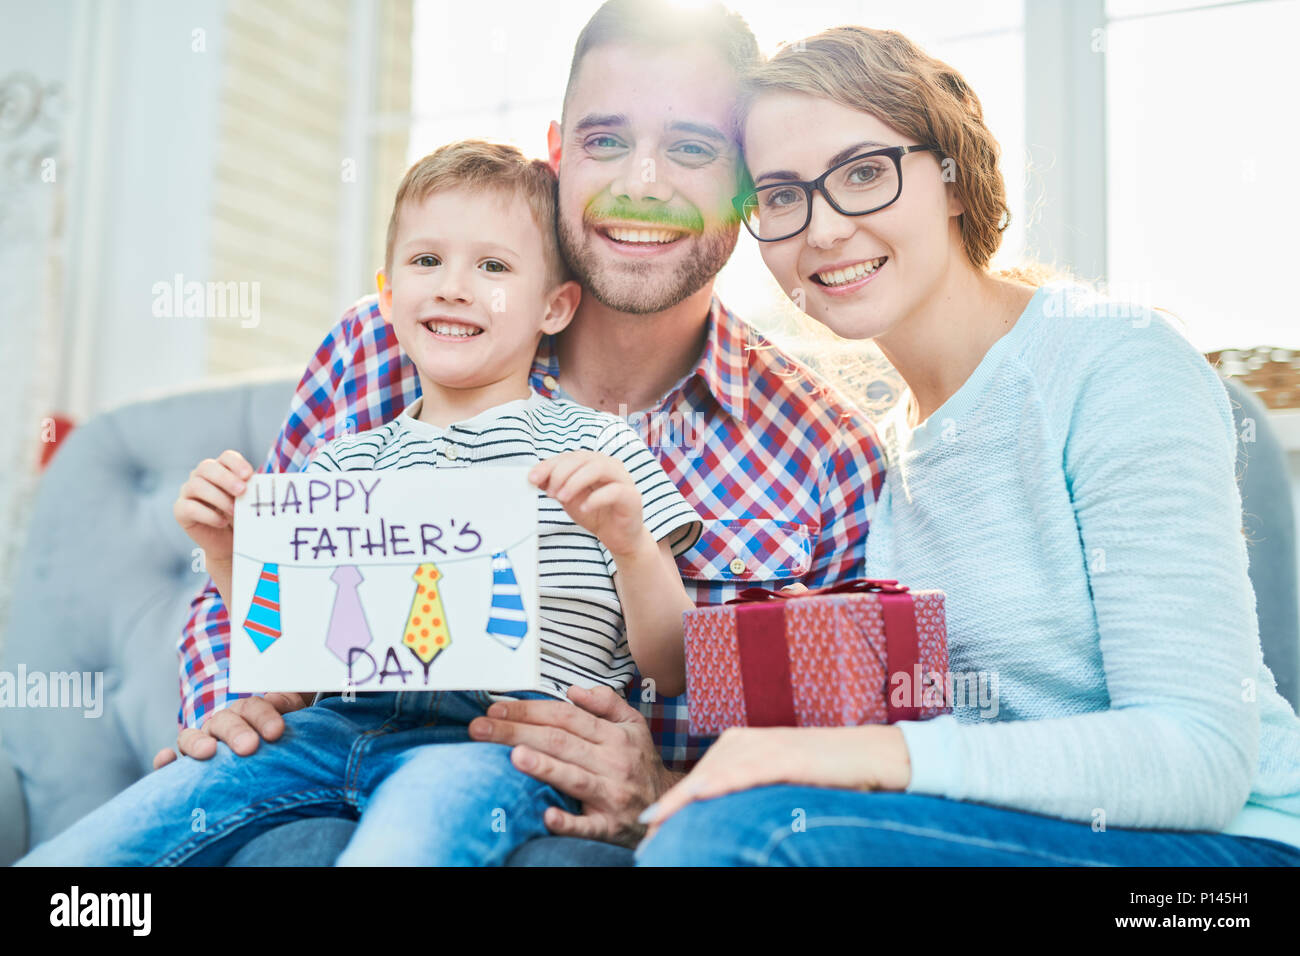 Family Portrait on Fathers Day Eve - Stock Image